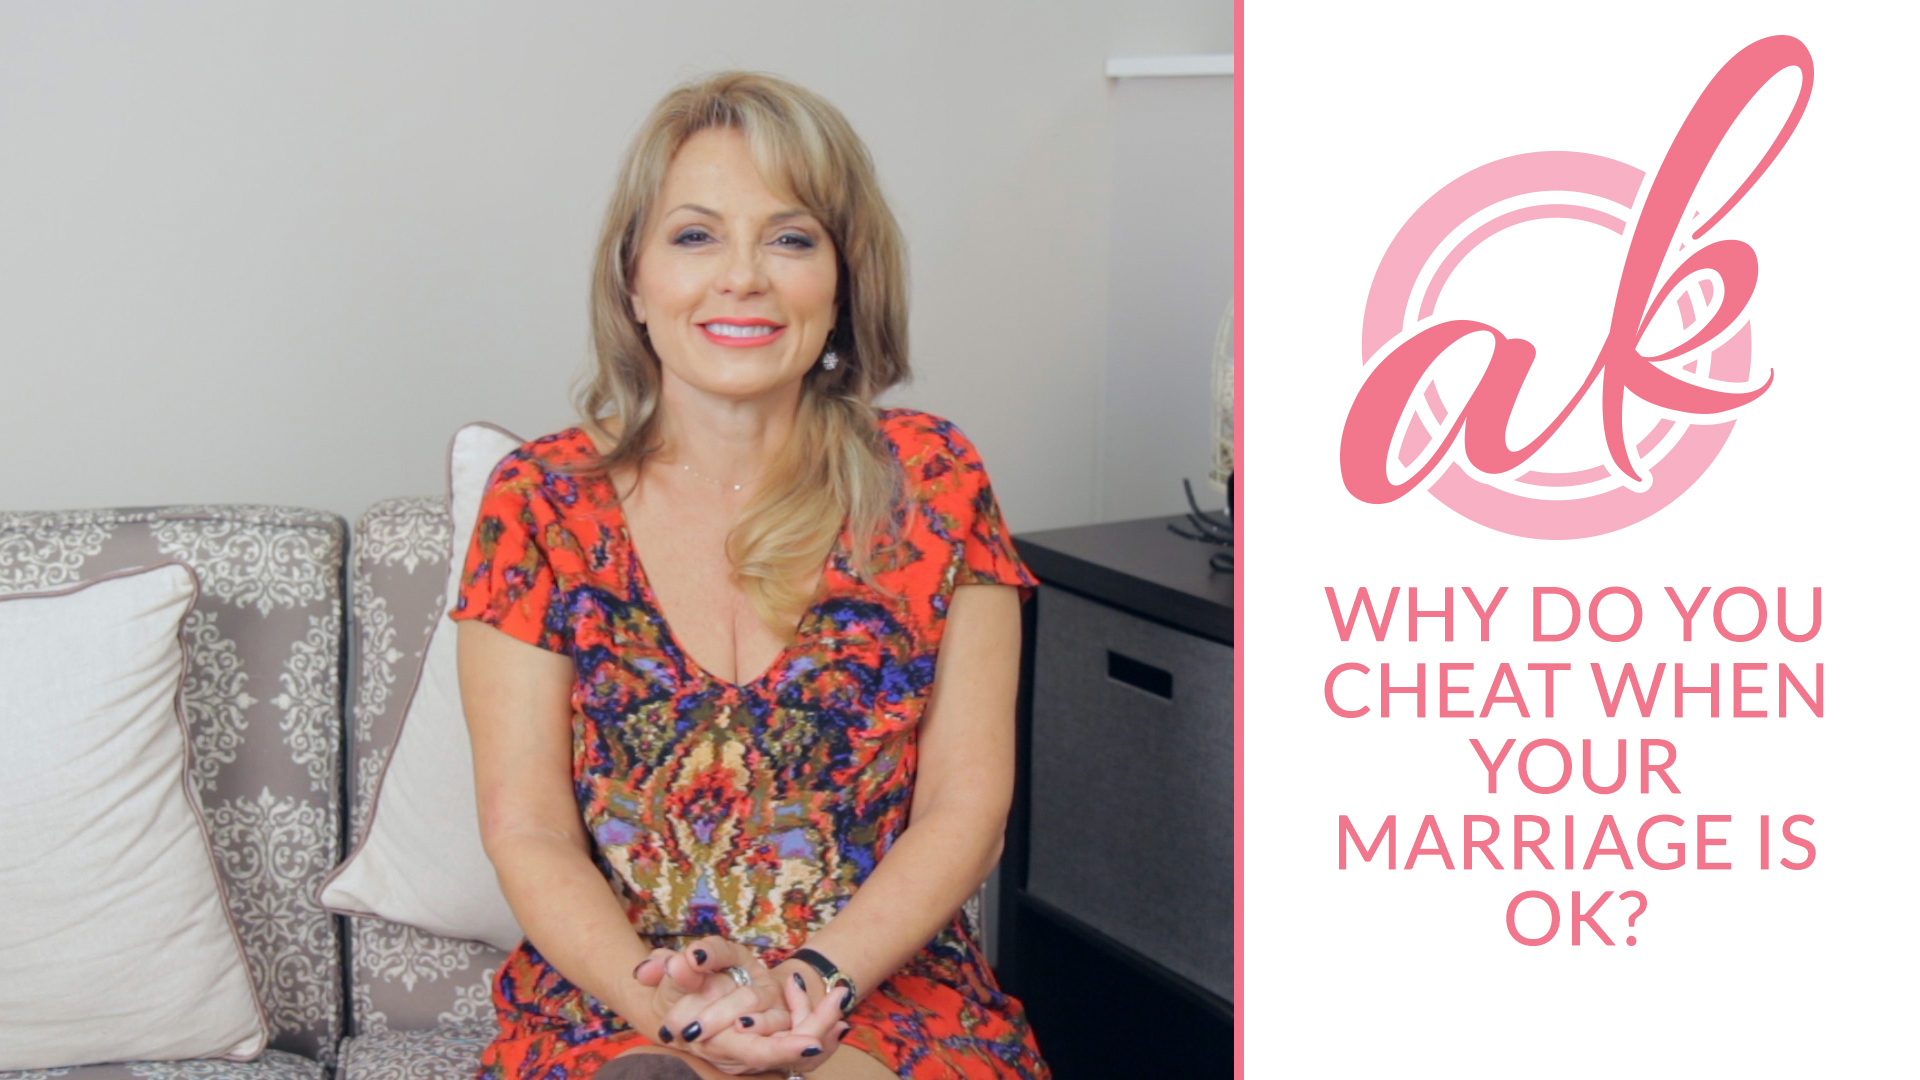 Episode 3 – Why Do You Cheat When Your'e Marriage is OK?